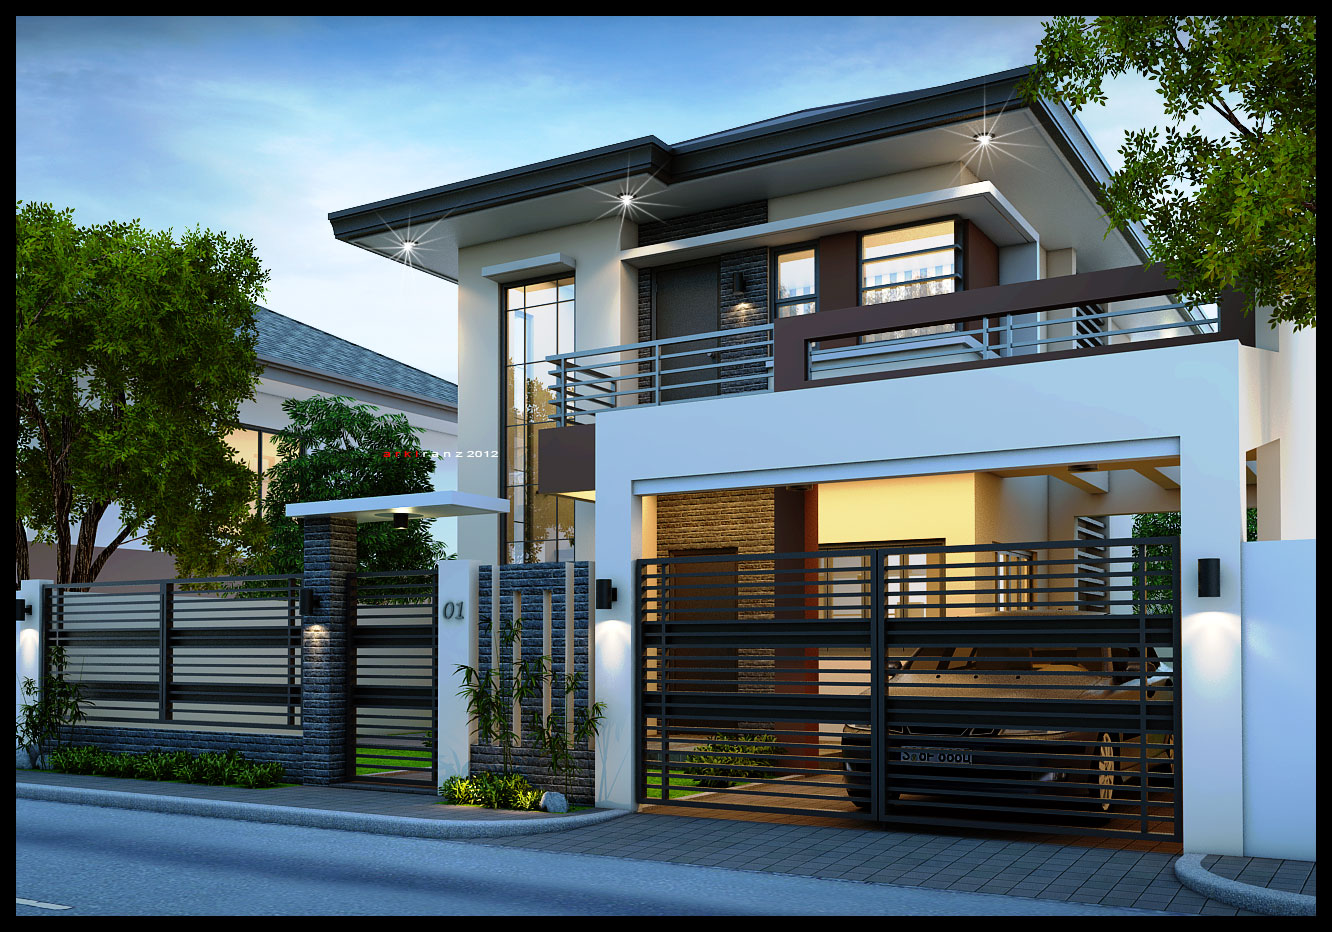 2 storey - View Small 2 Storey House Interior Design Philippines  Images